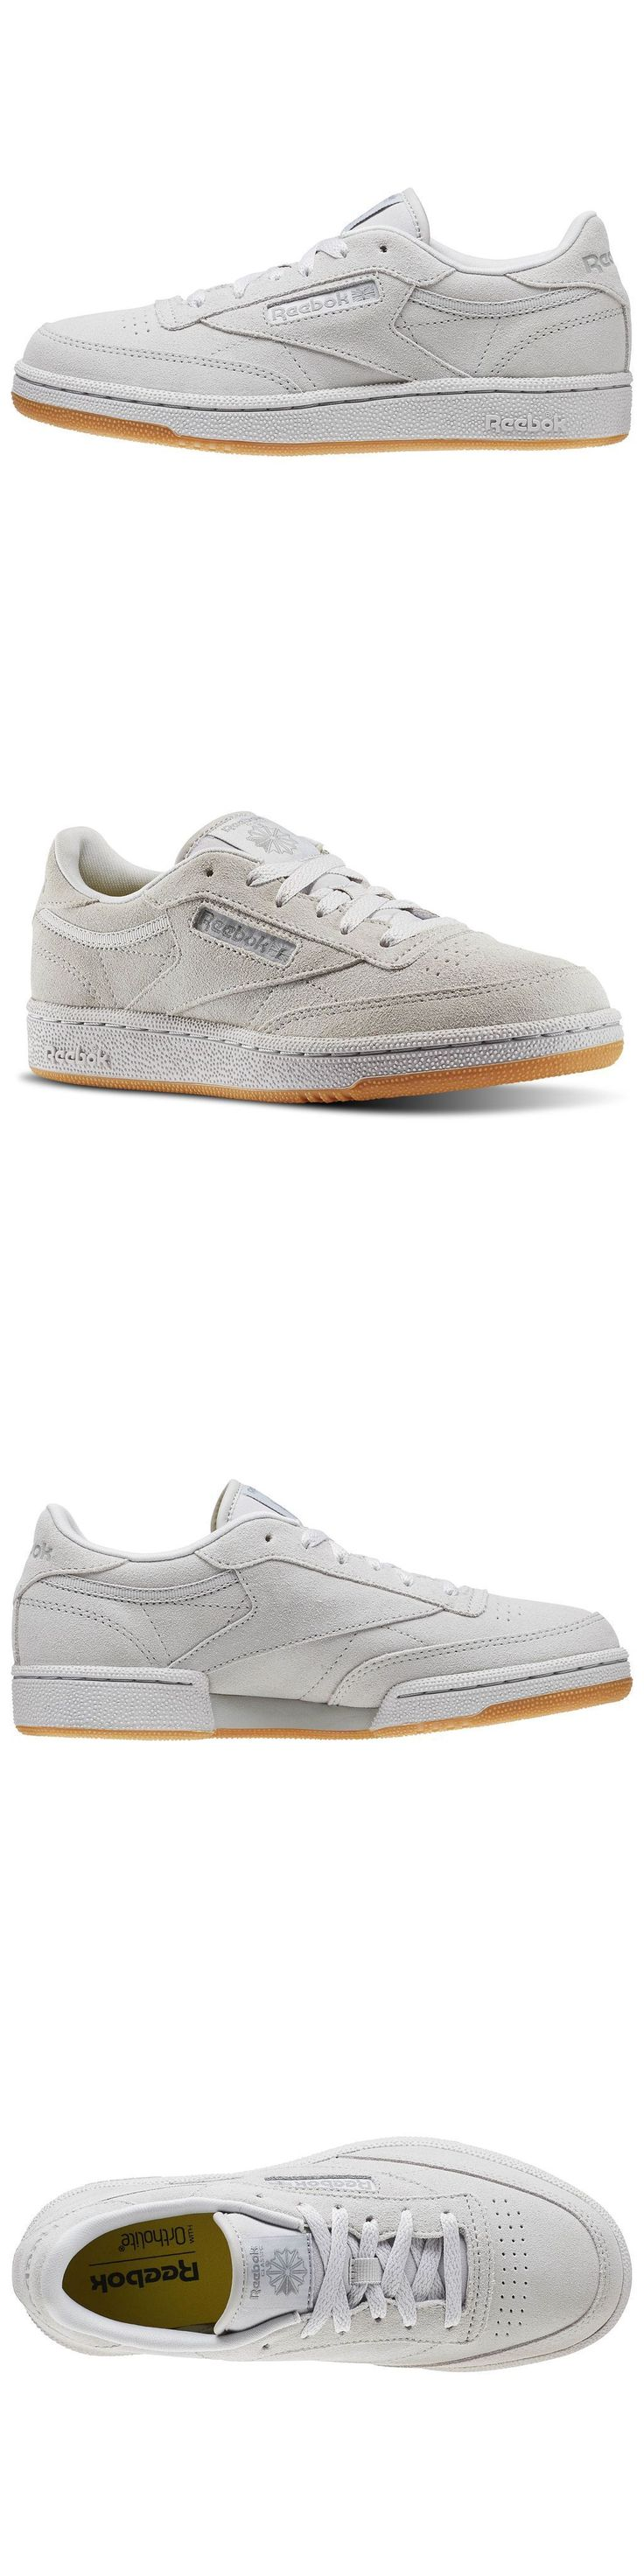 Youth 158954: Kids Reebok Club C 85 Tg Steel Bd4561 Gs Junior Classic Suede Carbon Gum -> BUY IT NOW ONLY: $55 on eBay!